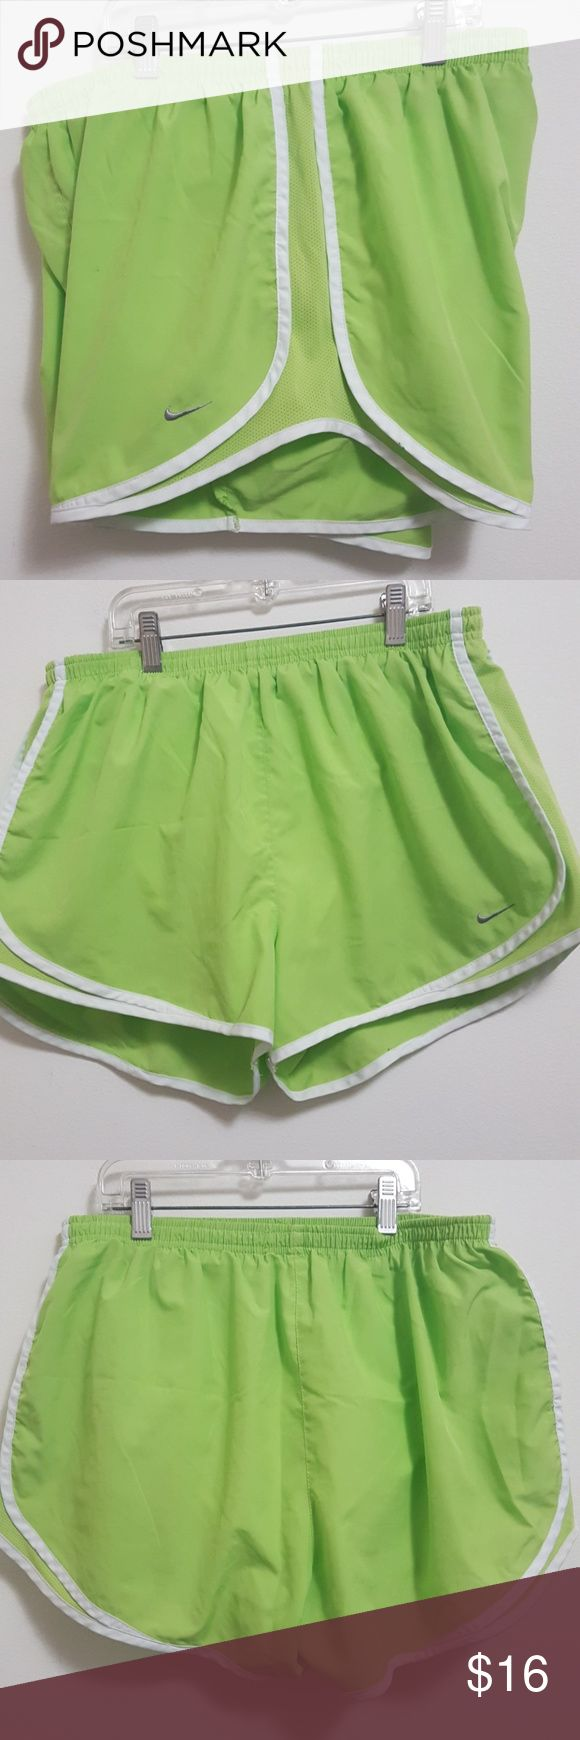 Nike FITDRY running shorts VERY GOOD CONDITION! Size extra large. Very minor flaw (very tiny pen mark in front. It's very small dot).  Lime green shorts with white trim.Has white inner lining with inner pocket in the front. Gray embroidered nike swoosh in bottom left corner.  Great for workout shorts or any active activity.   No trades. Bundle to save on shipping!  Offers are welcomed through offer button only. Nike Shorts